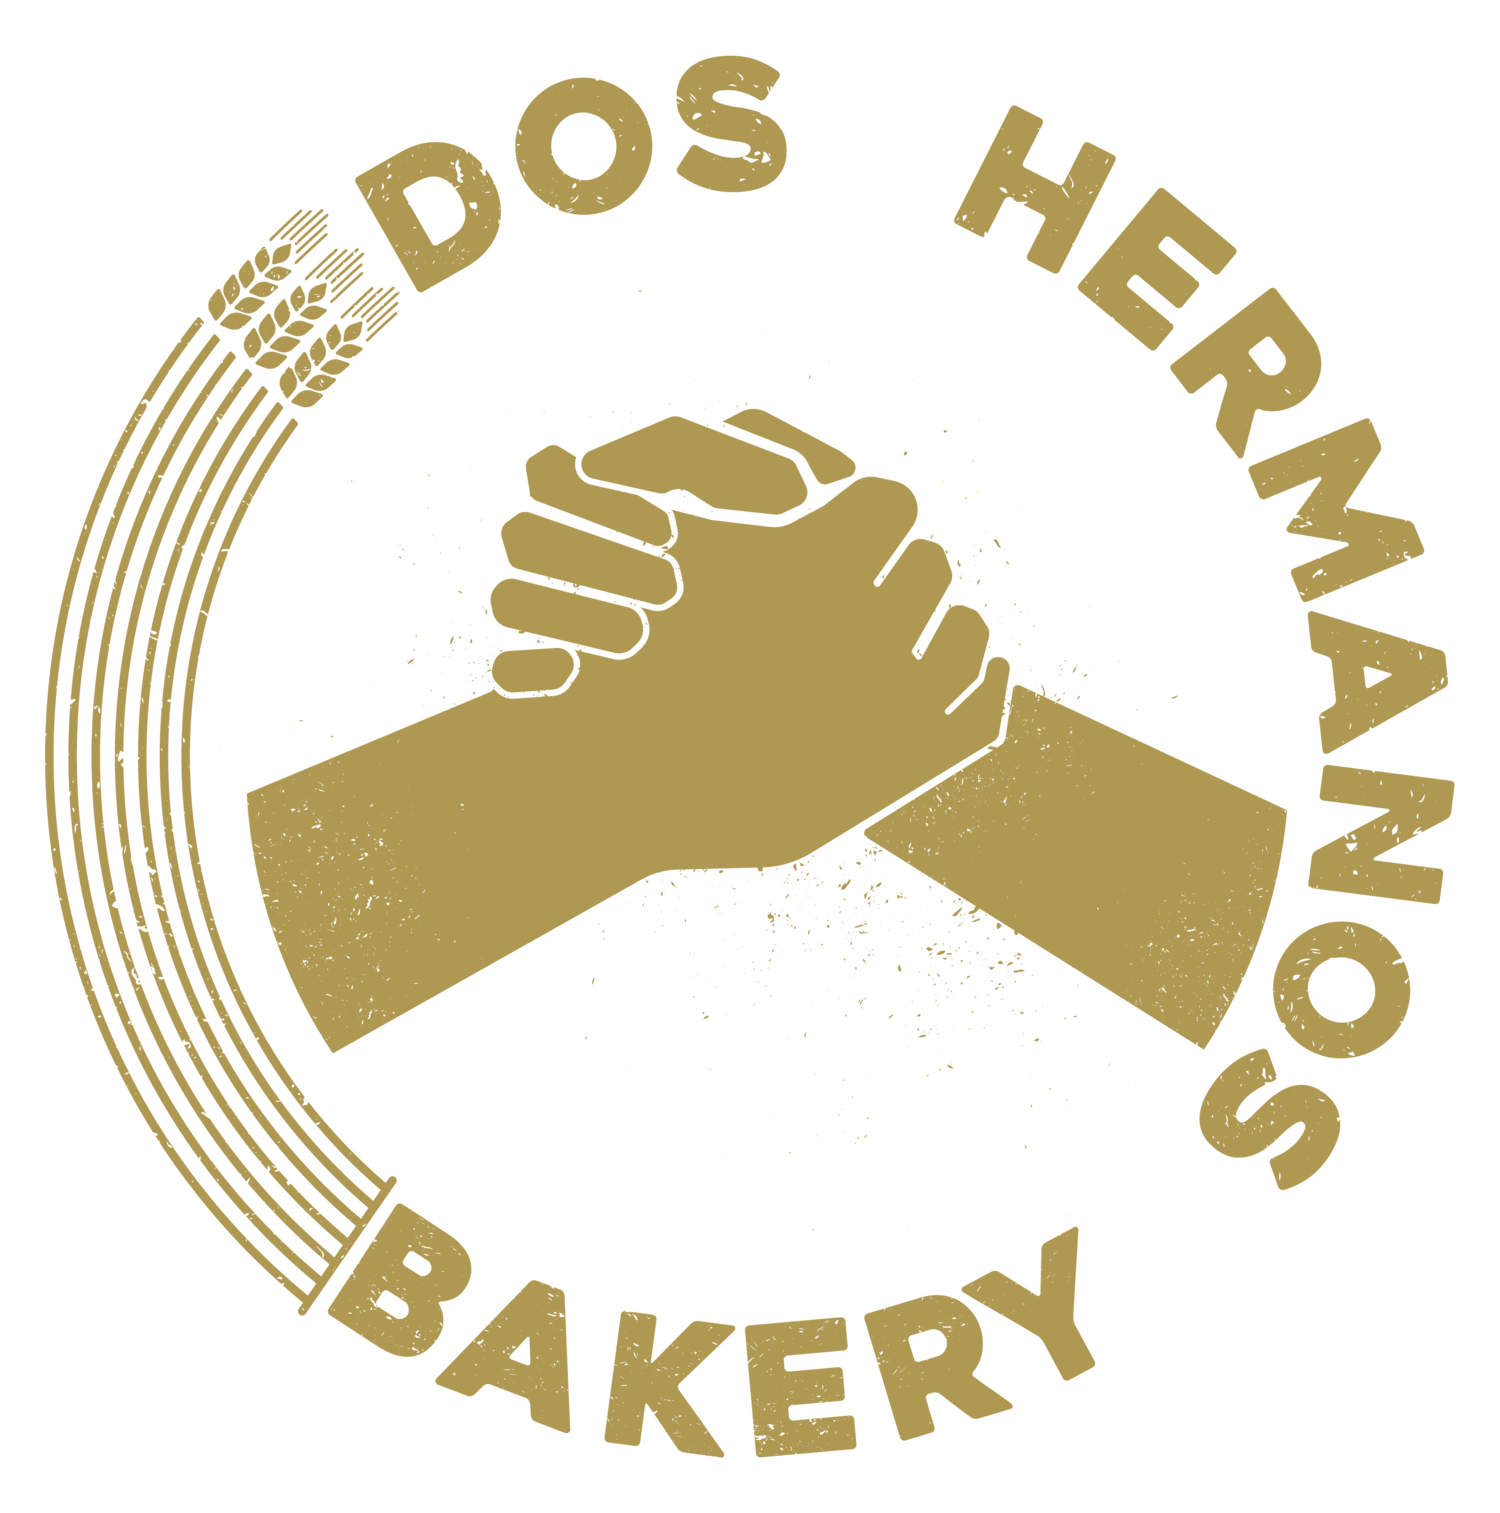 Dos Hermanos Bakery